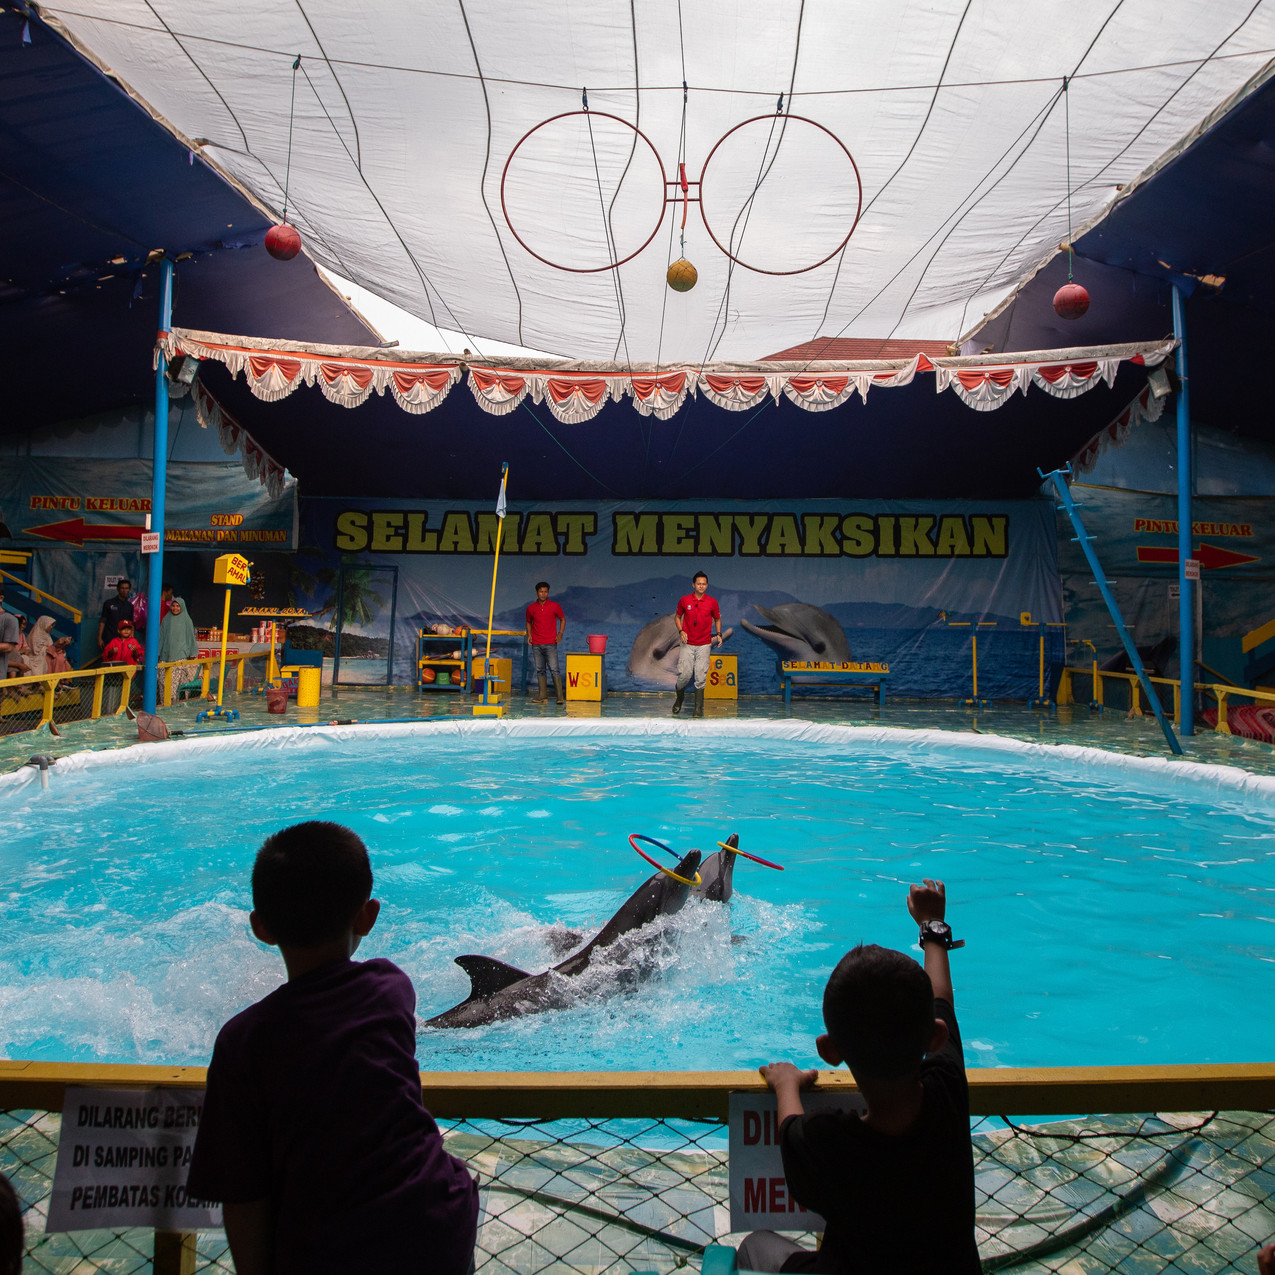 Children watching dolphins with hoops_WS